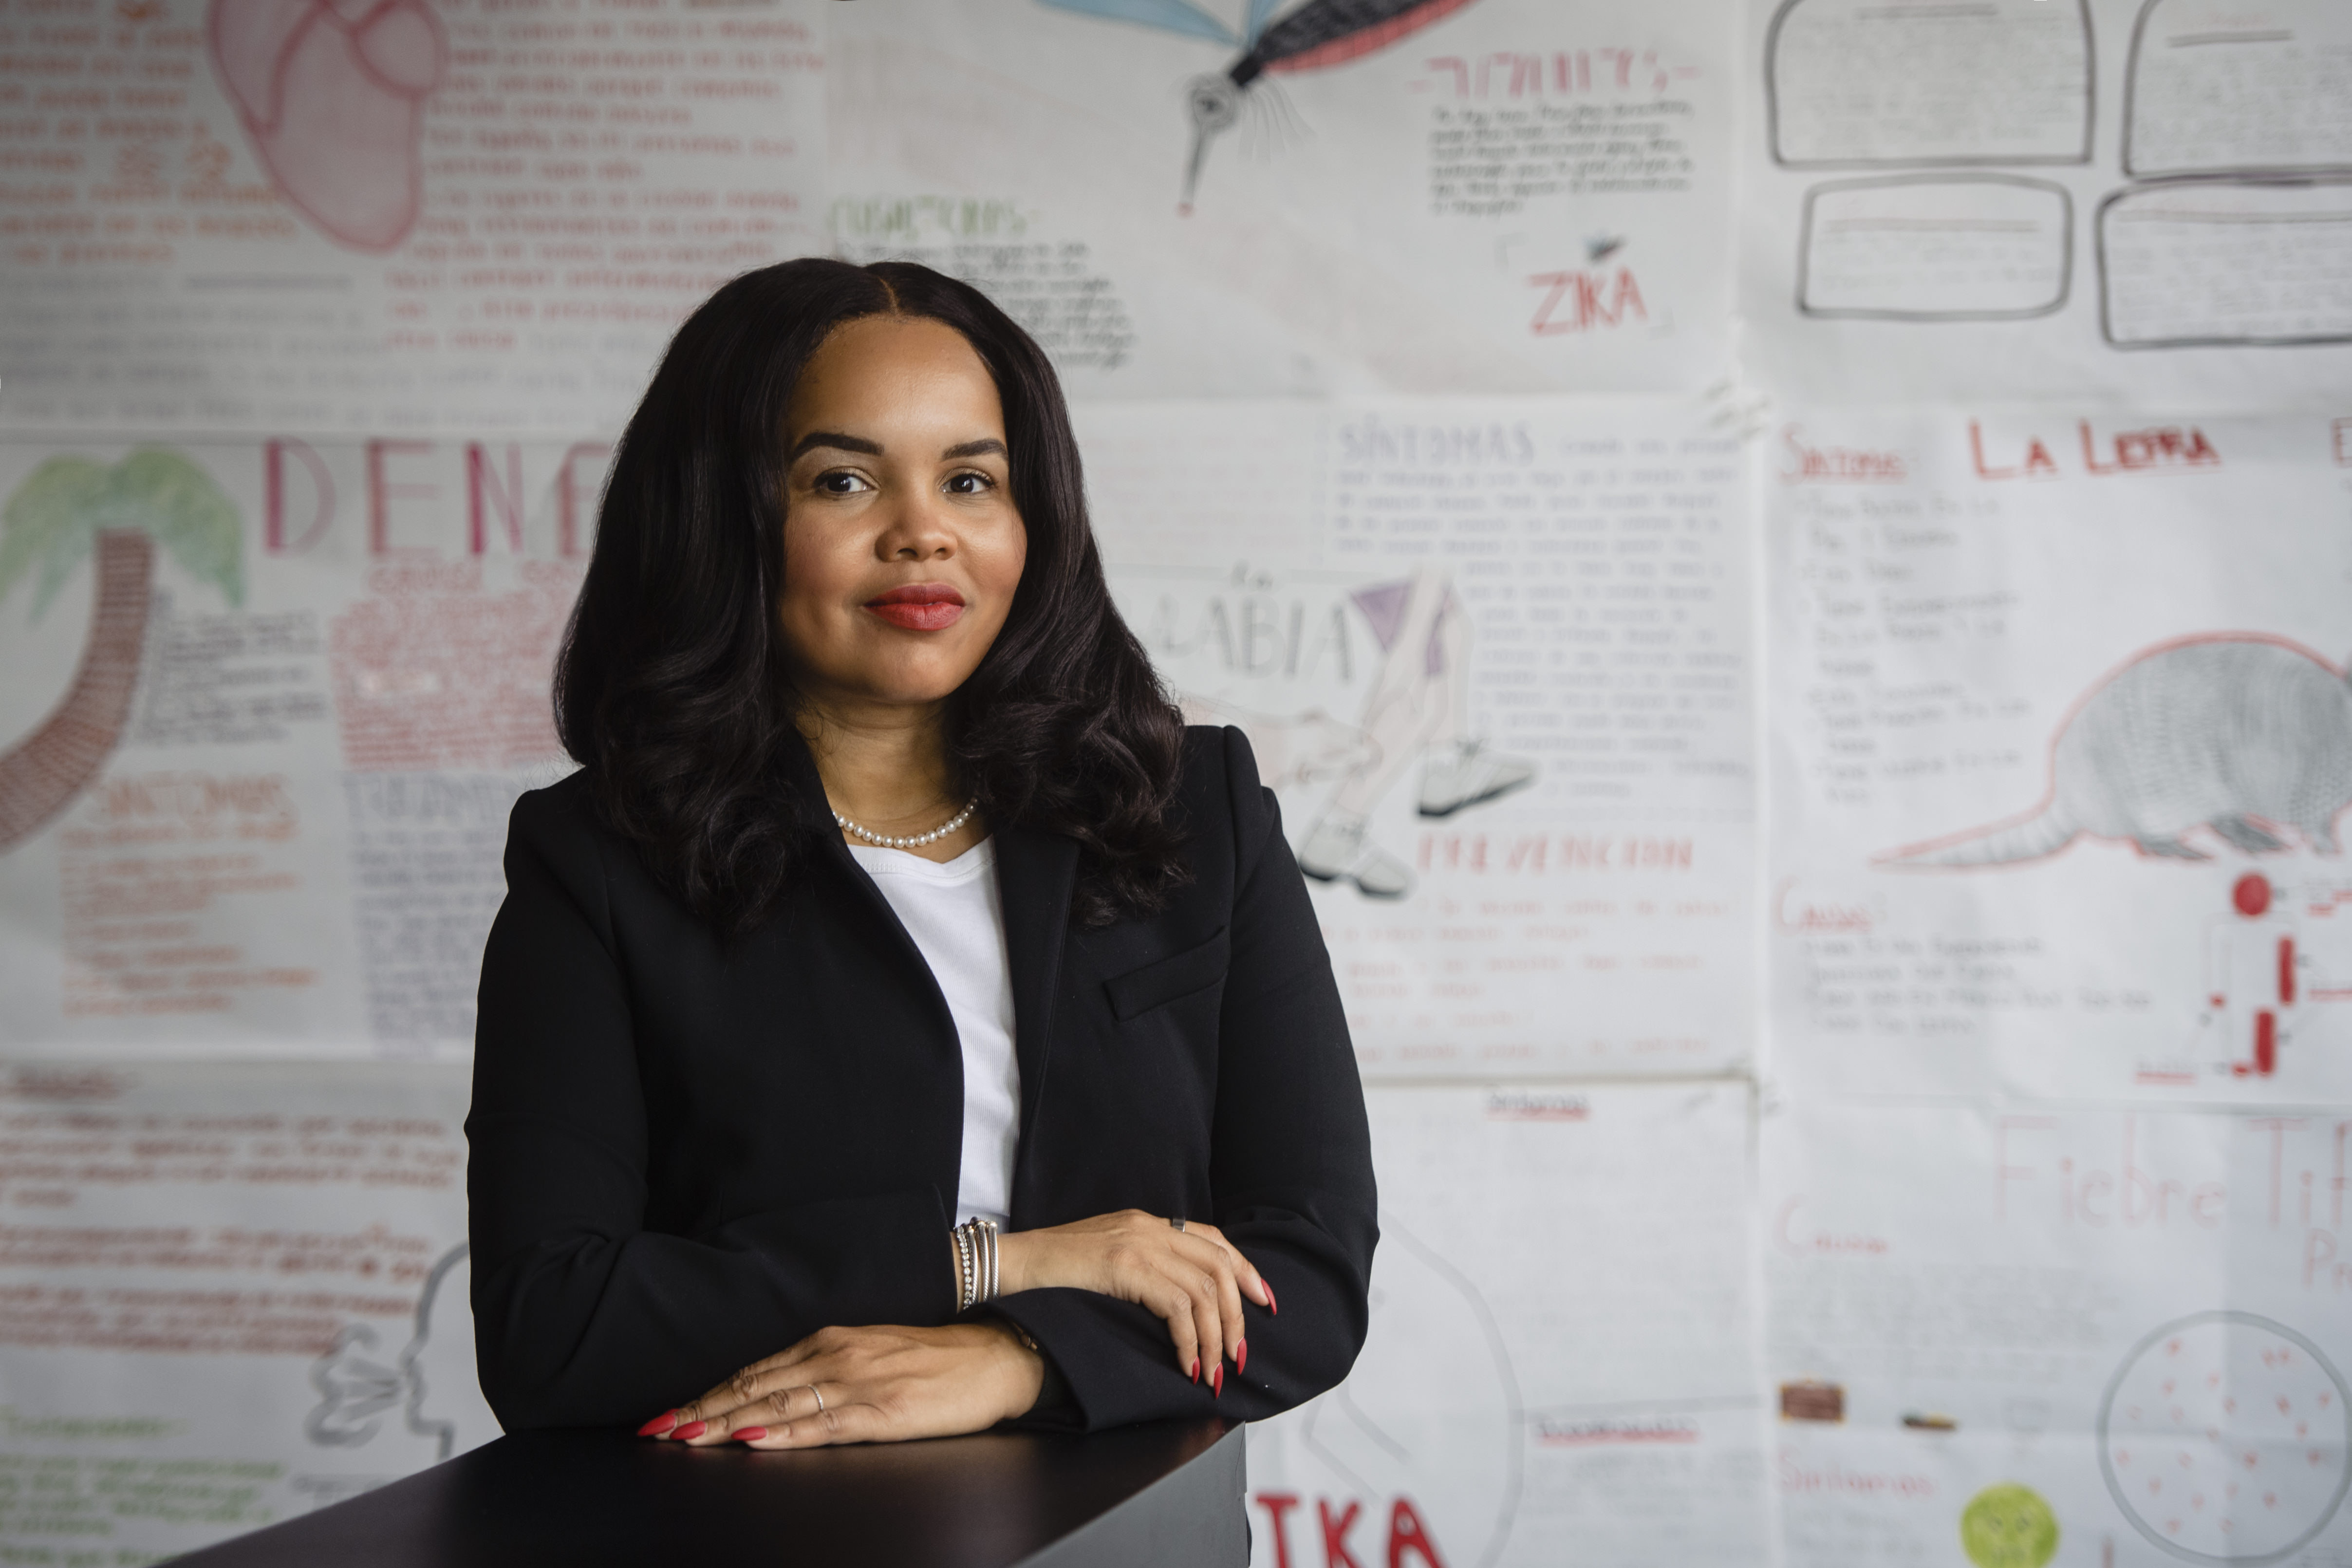 Christina Grant became the new state superintendent in Washington D.C. in June, 2021